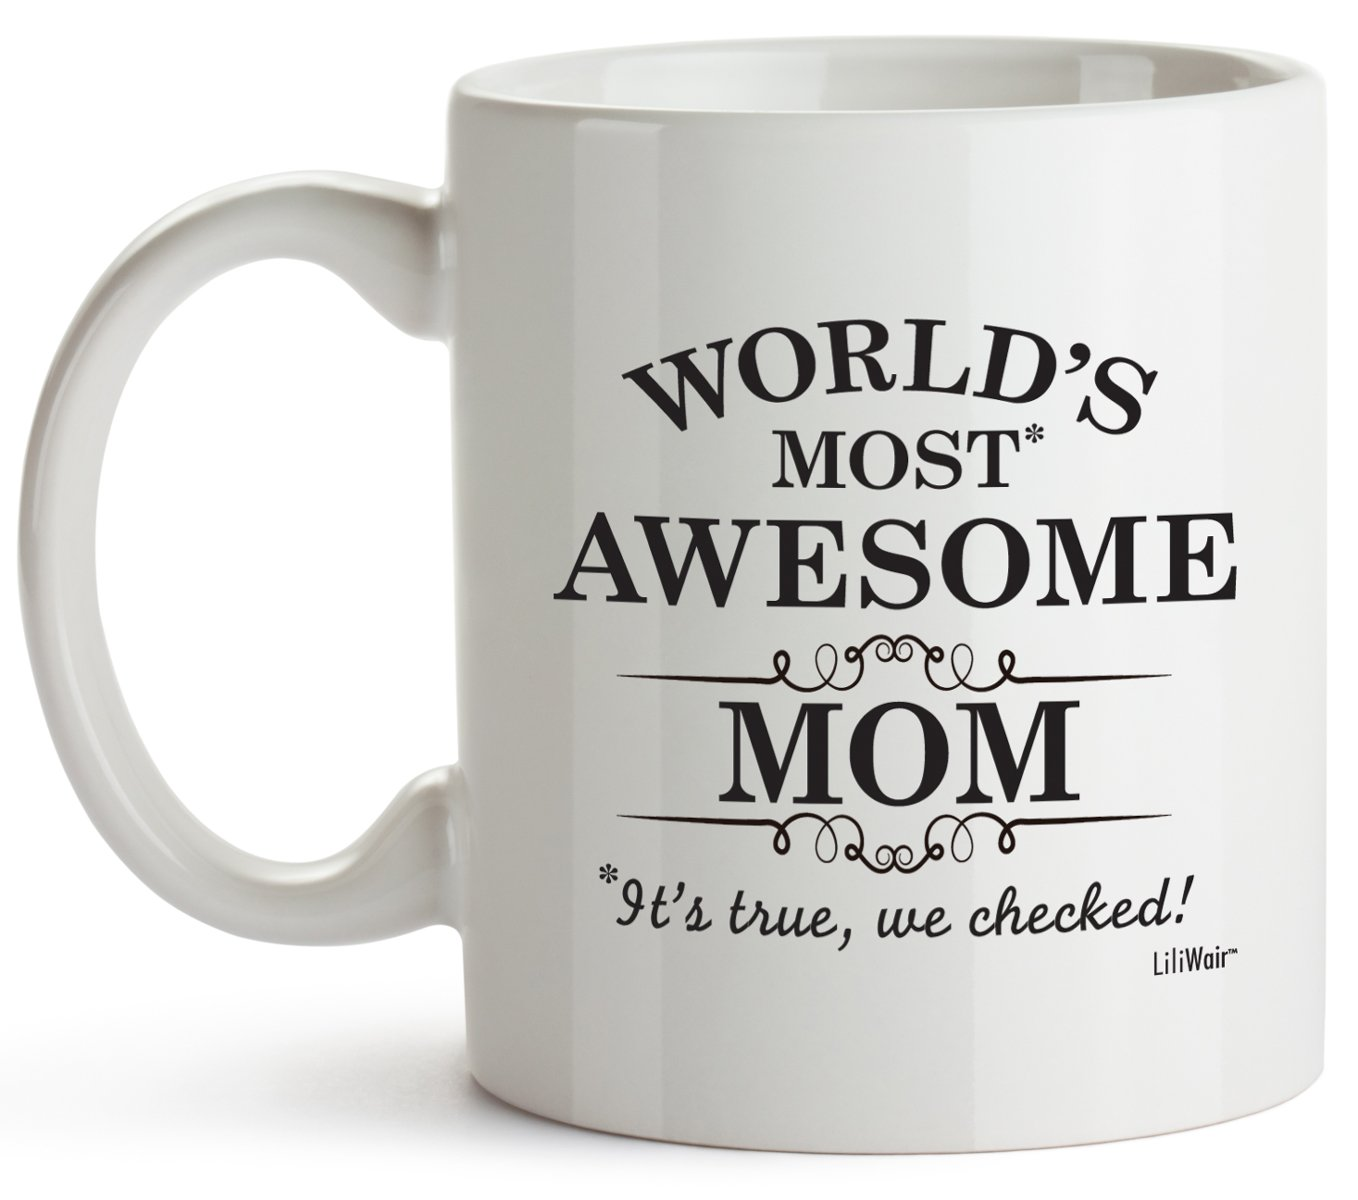 Mom Gifts From Daughter Christmas Birthday Gift Ideas Moms Best Mother In Law New Coffee Mug Son Great Funny Presents Mugs Mommy Mothers Dad To Wife Cheap